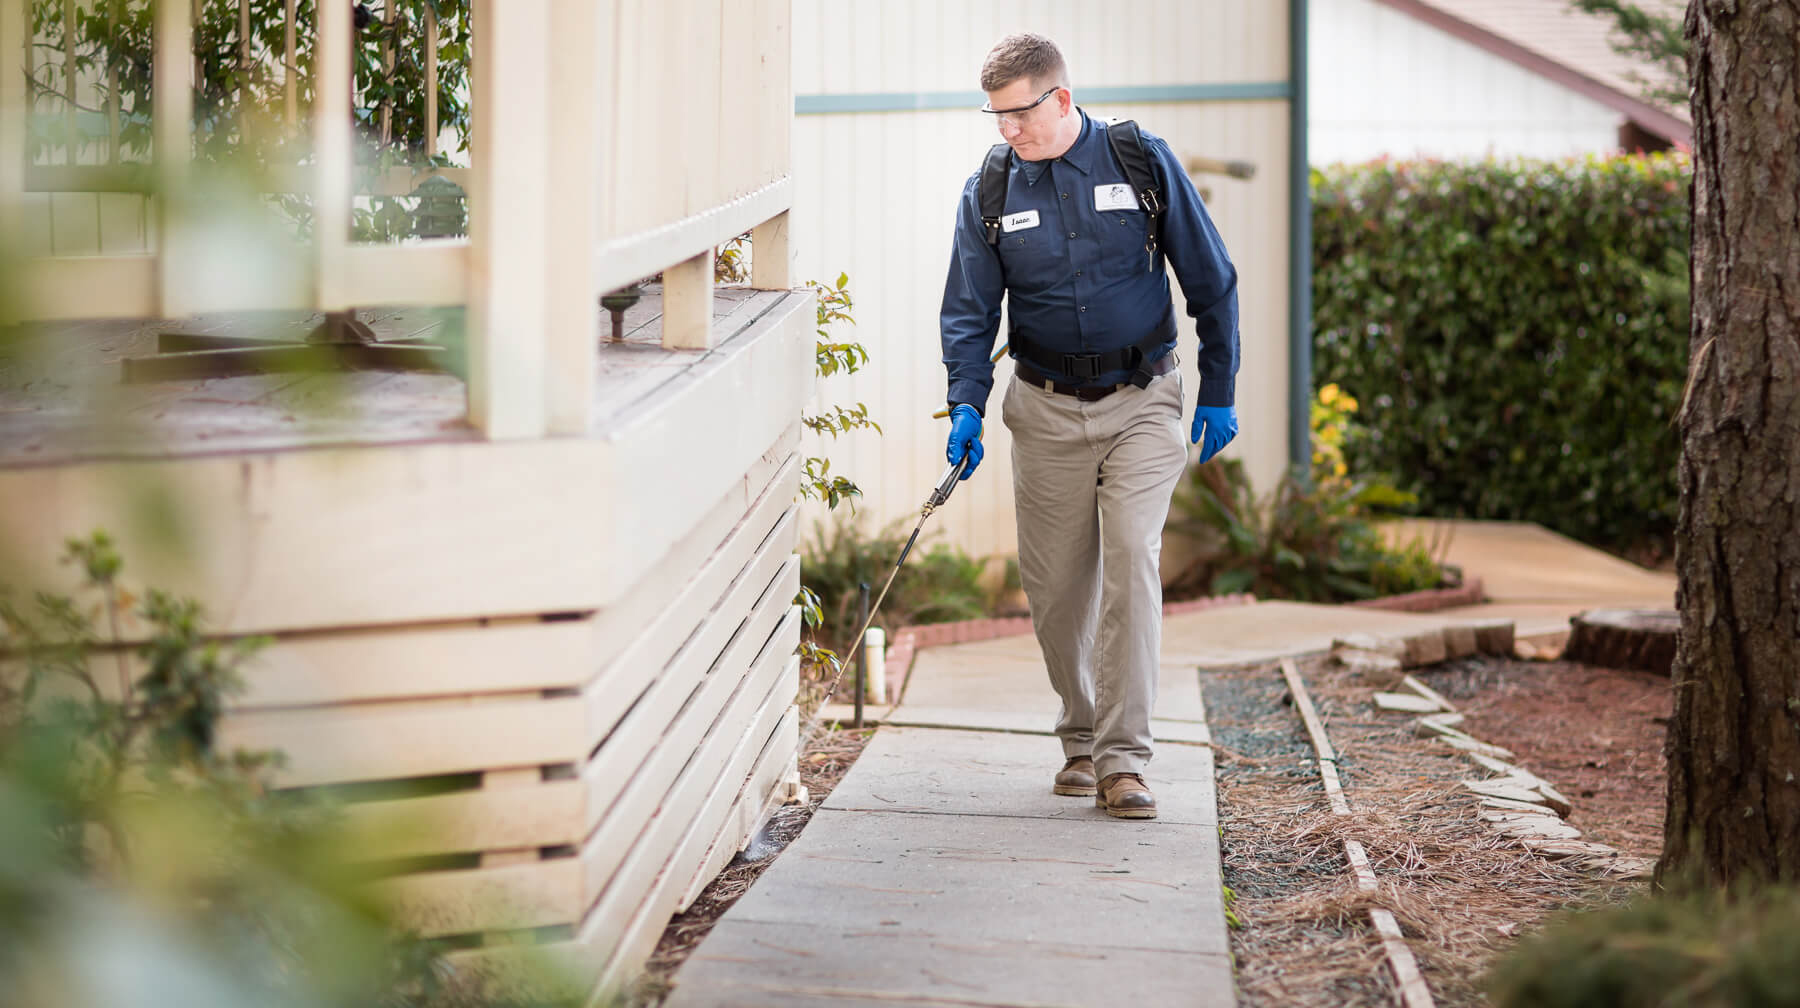 Determining the Need for Bed Bug Exterminators